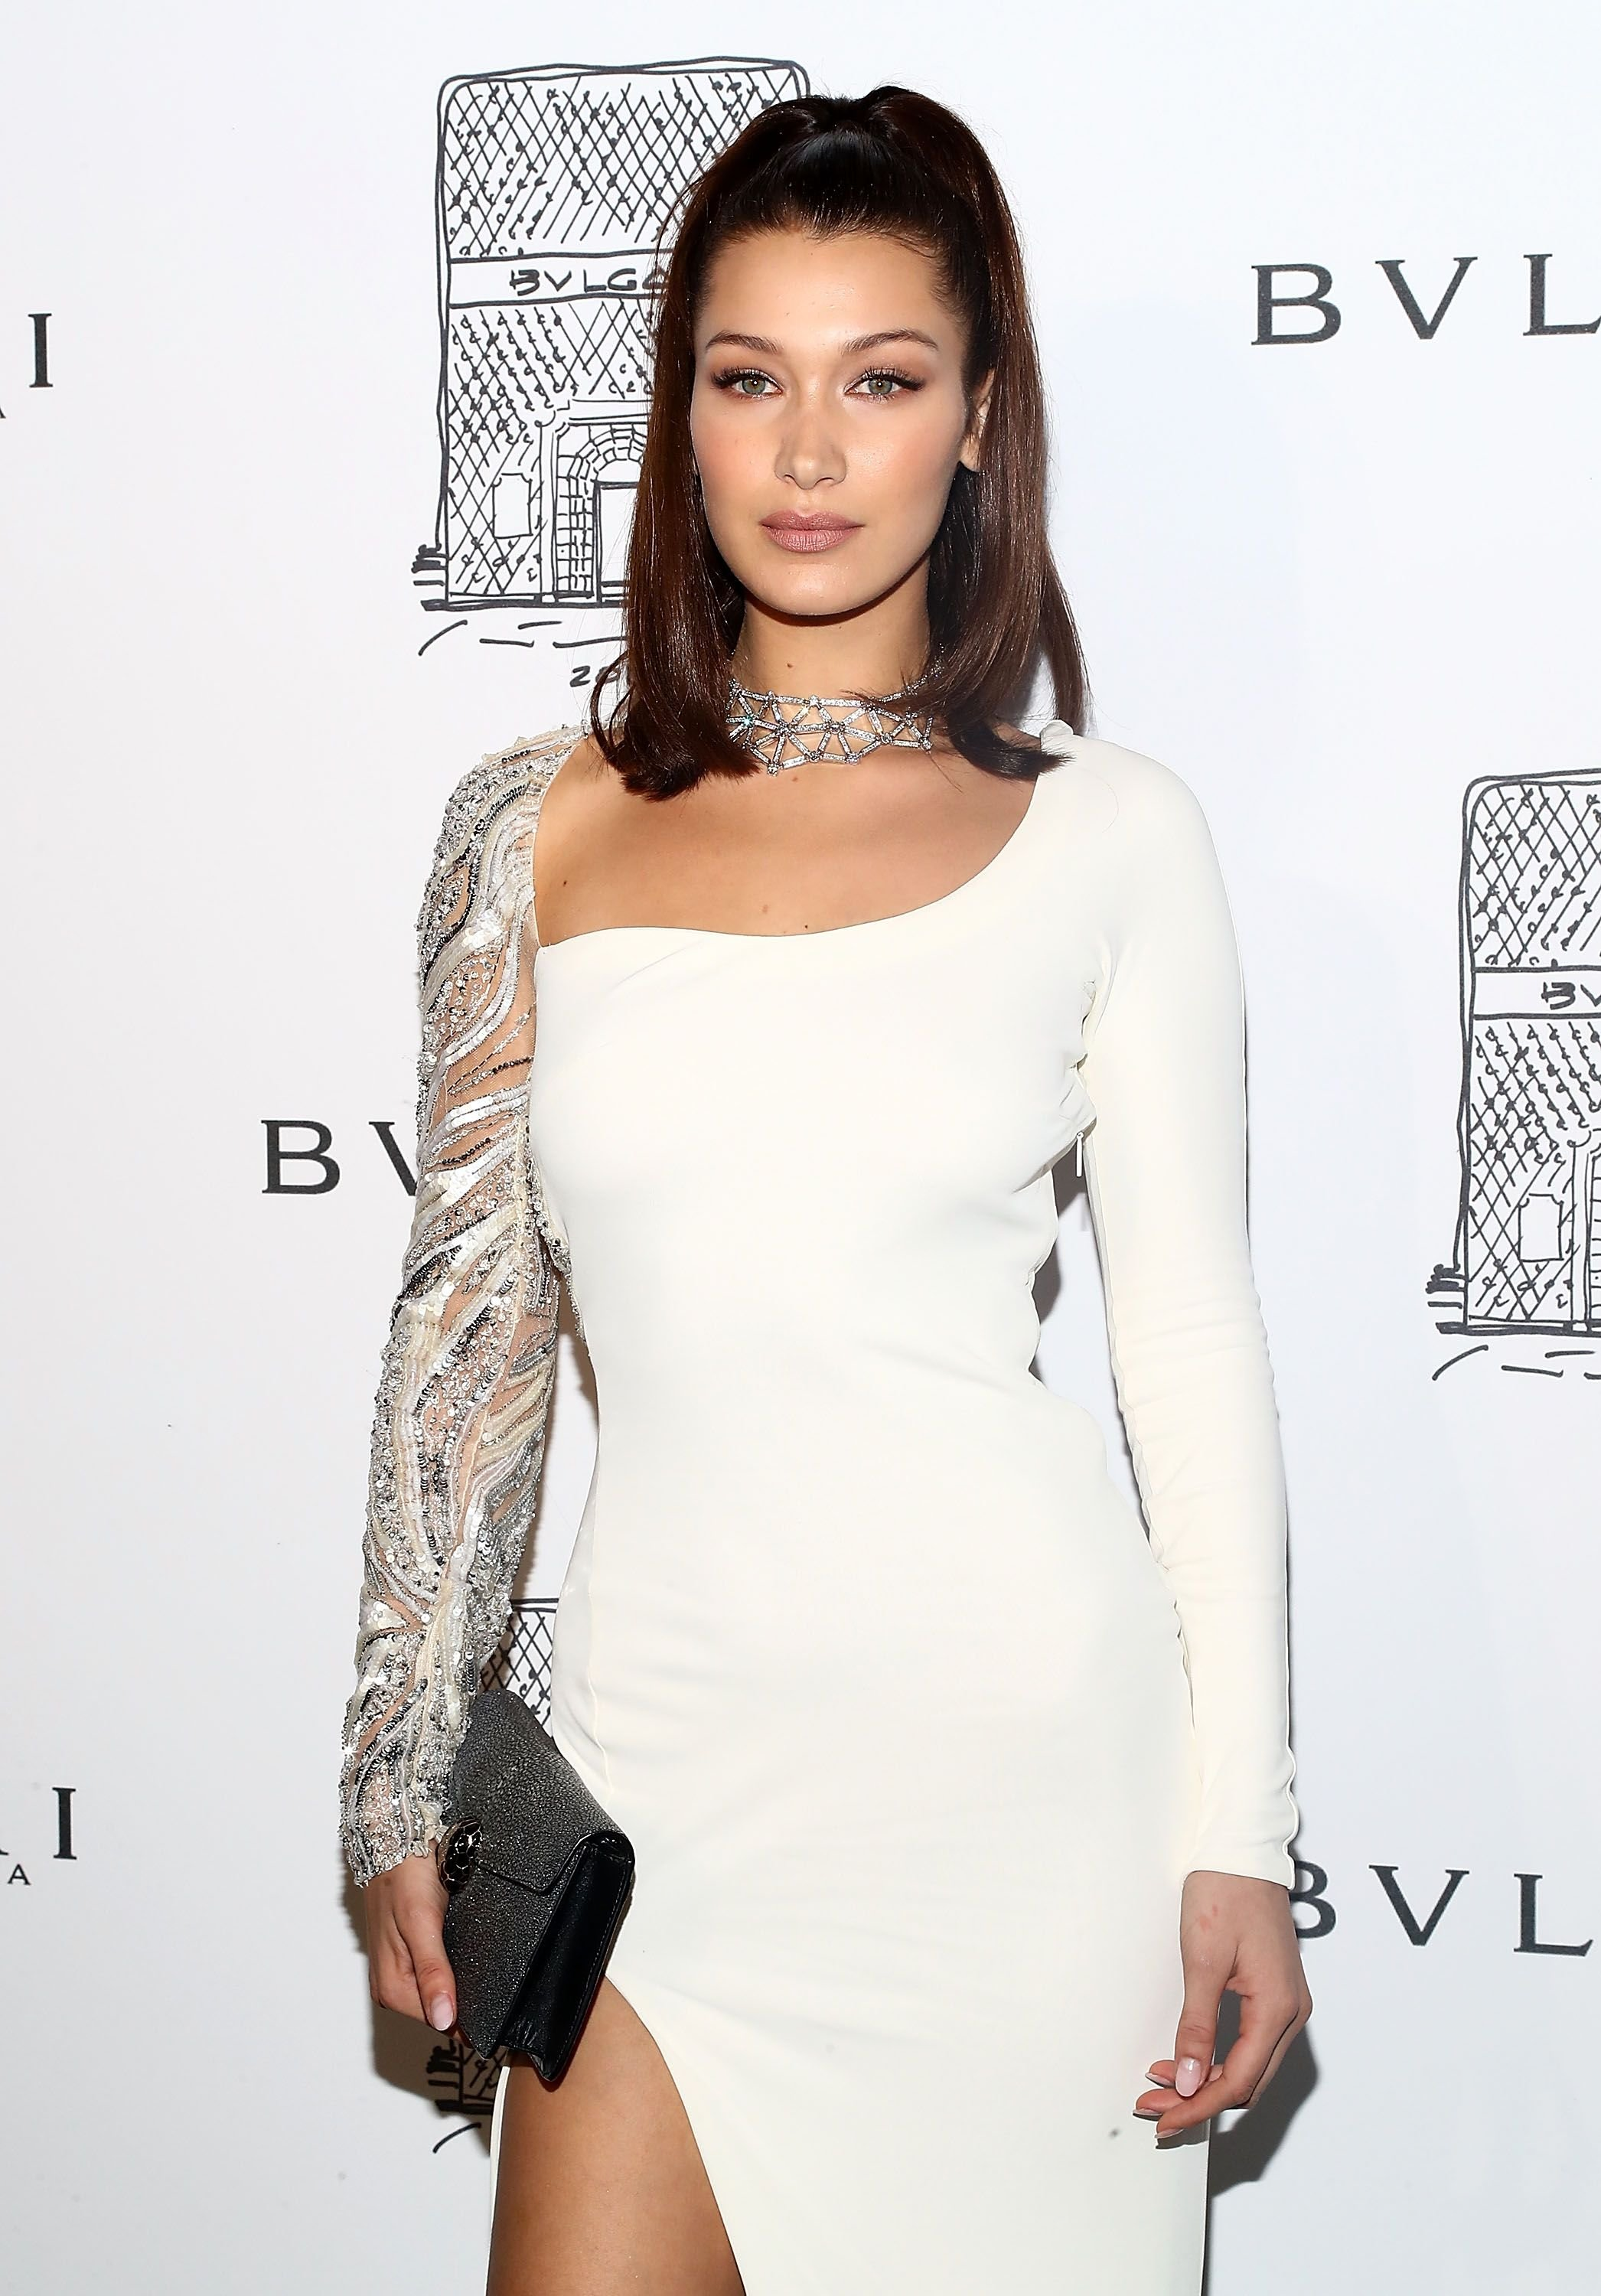 Bella Hadid at Bulgari 5th Avenue flagship store opening on October 20, 2017   Photo: Getty Images